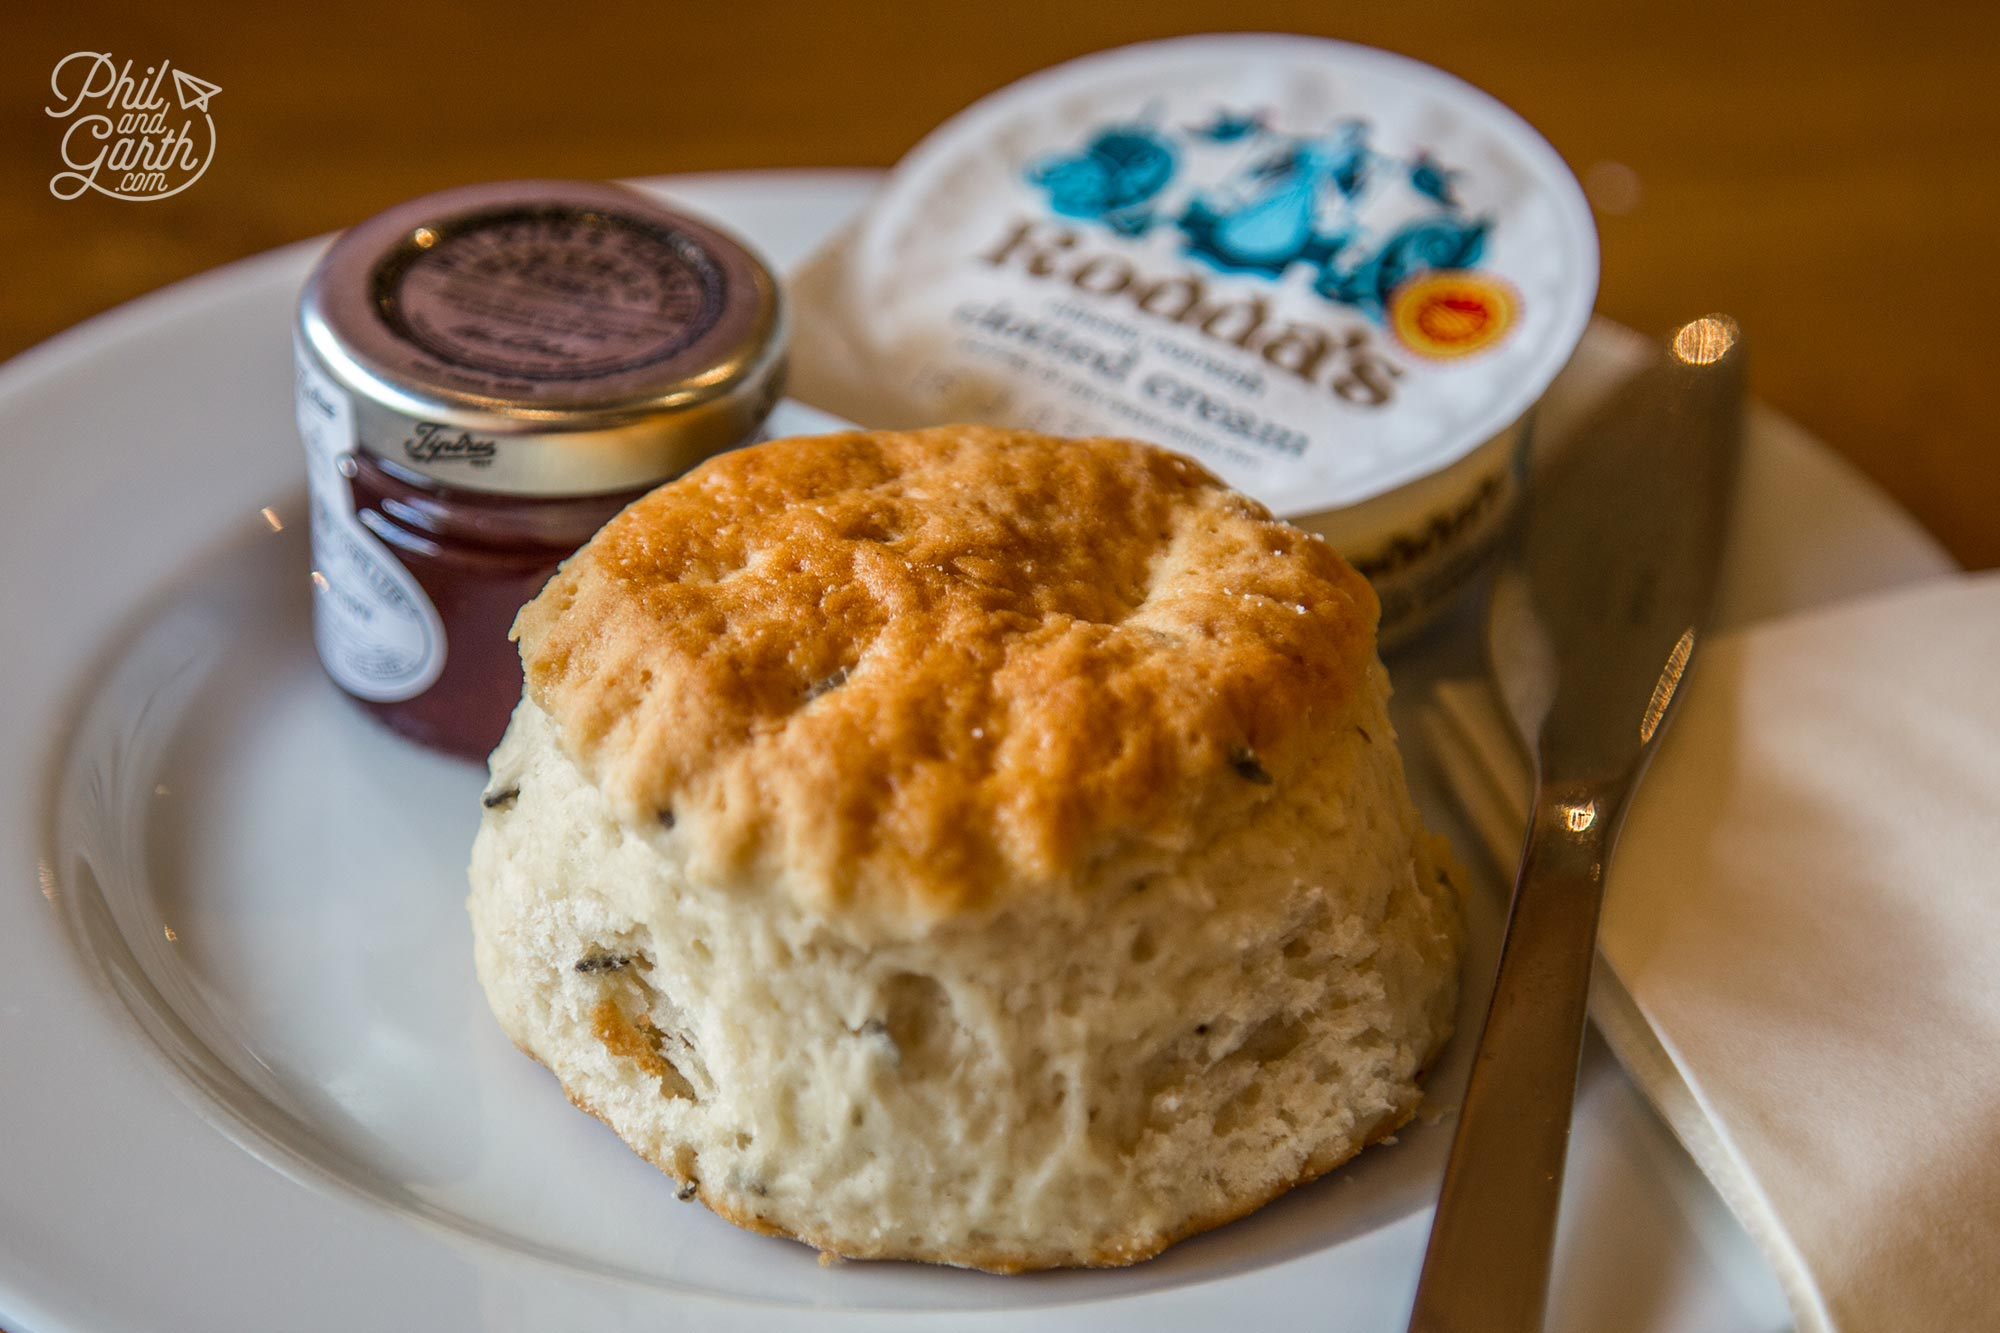 Delicious cream tea - Can you see the flecks of English lavender in our scones?